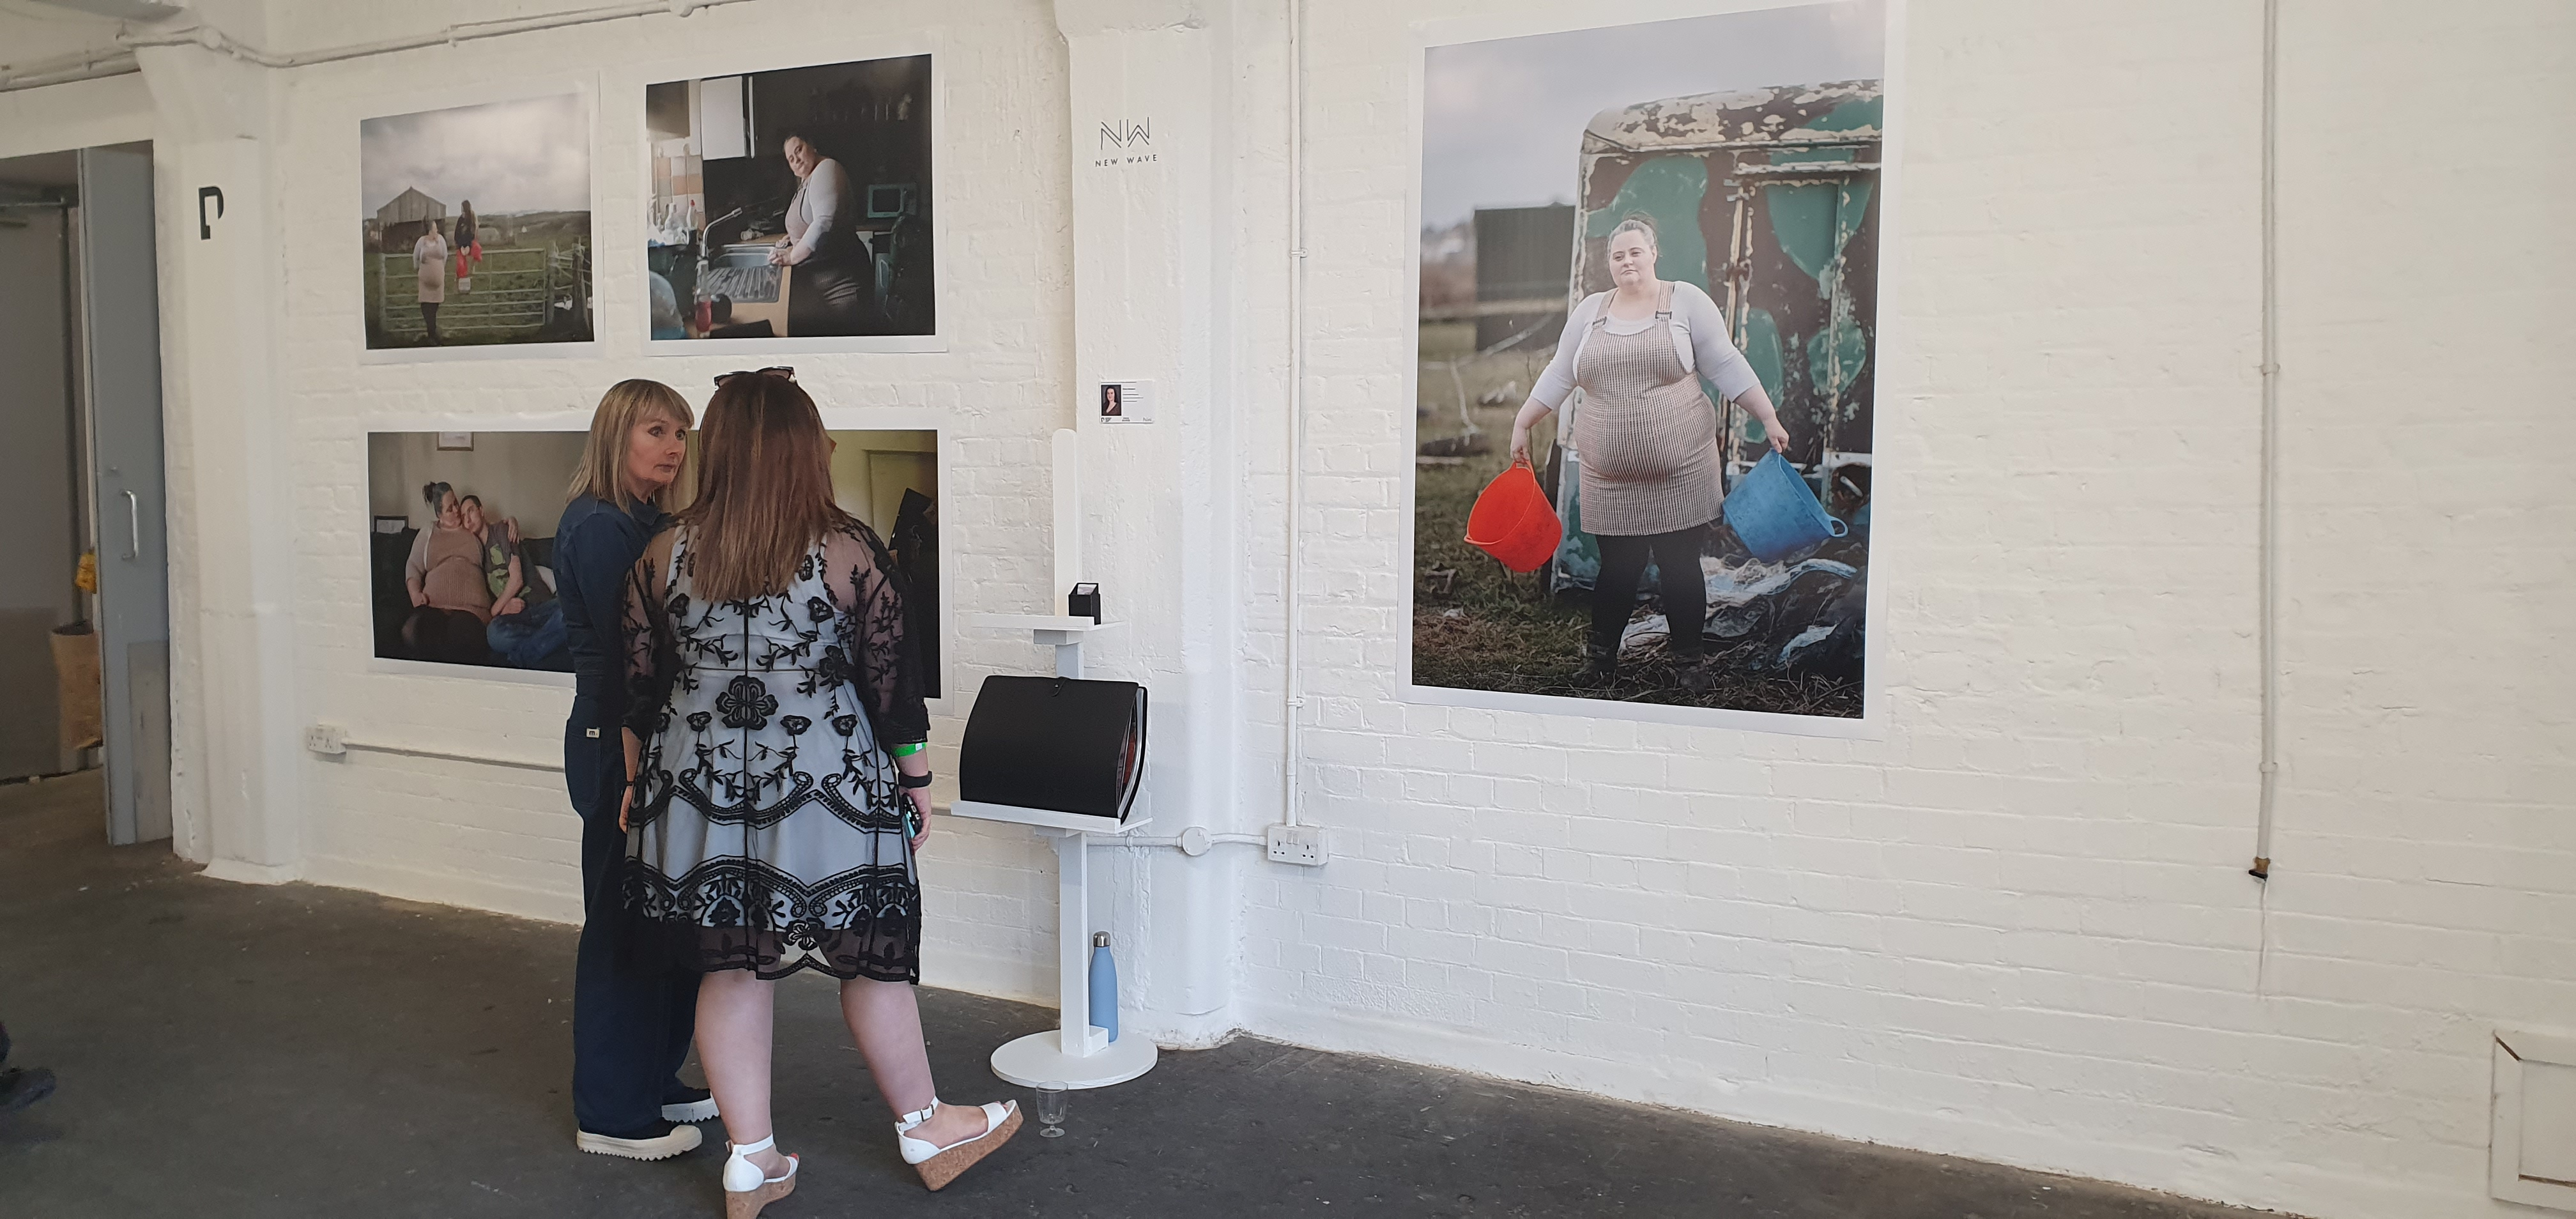 AOP Student Awards shortlisted student, Nicola Simpson, discusses her final major project with top editorial photographer, Olivia Beasley